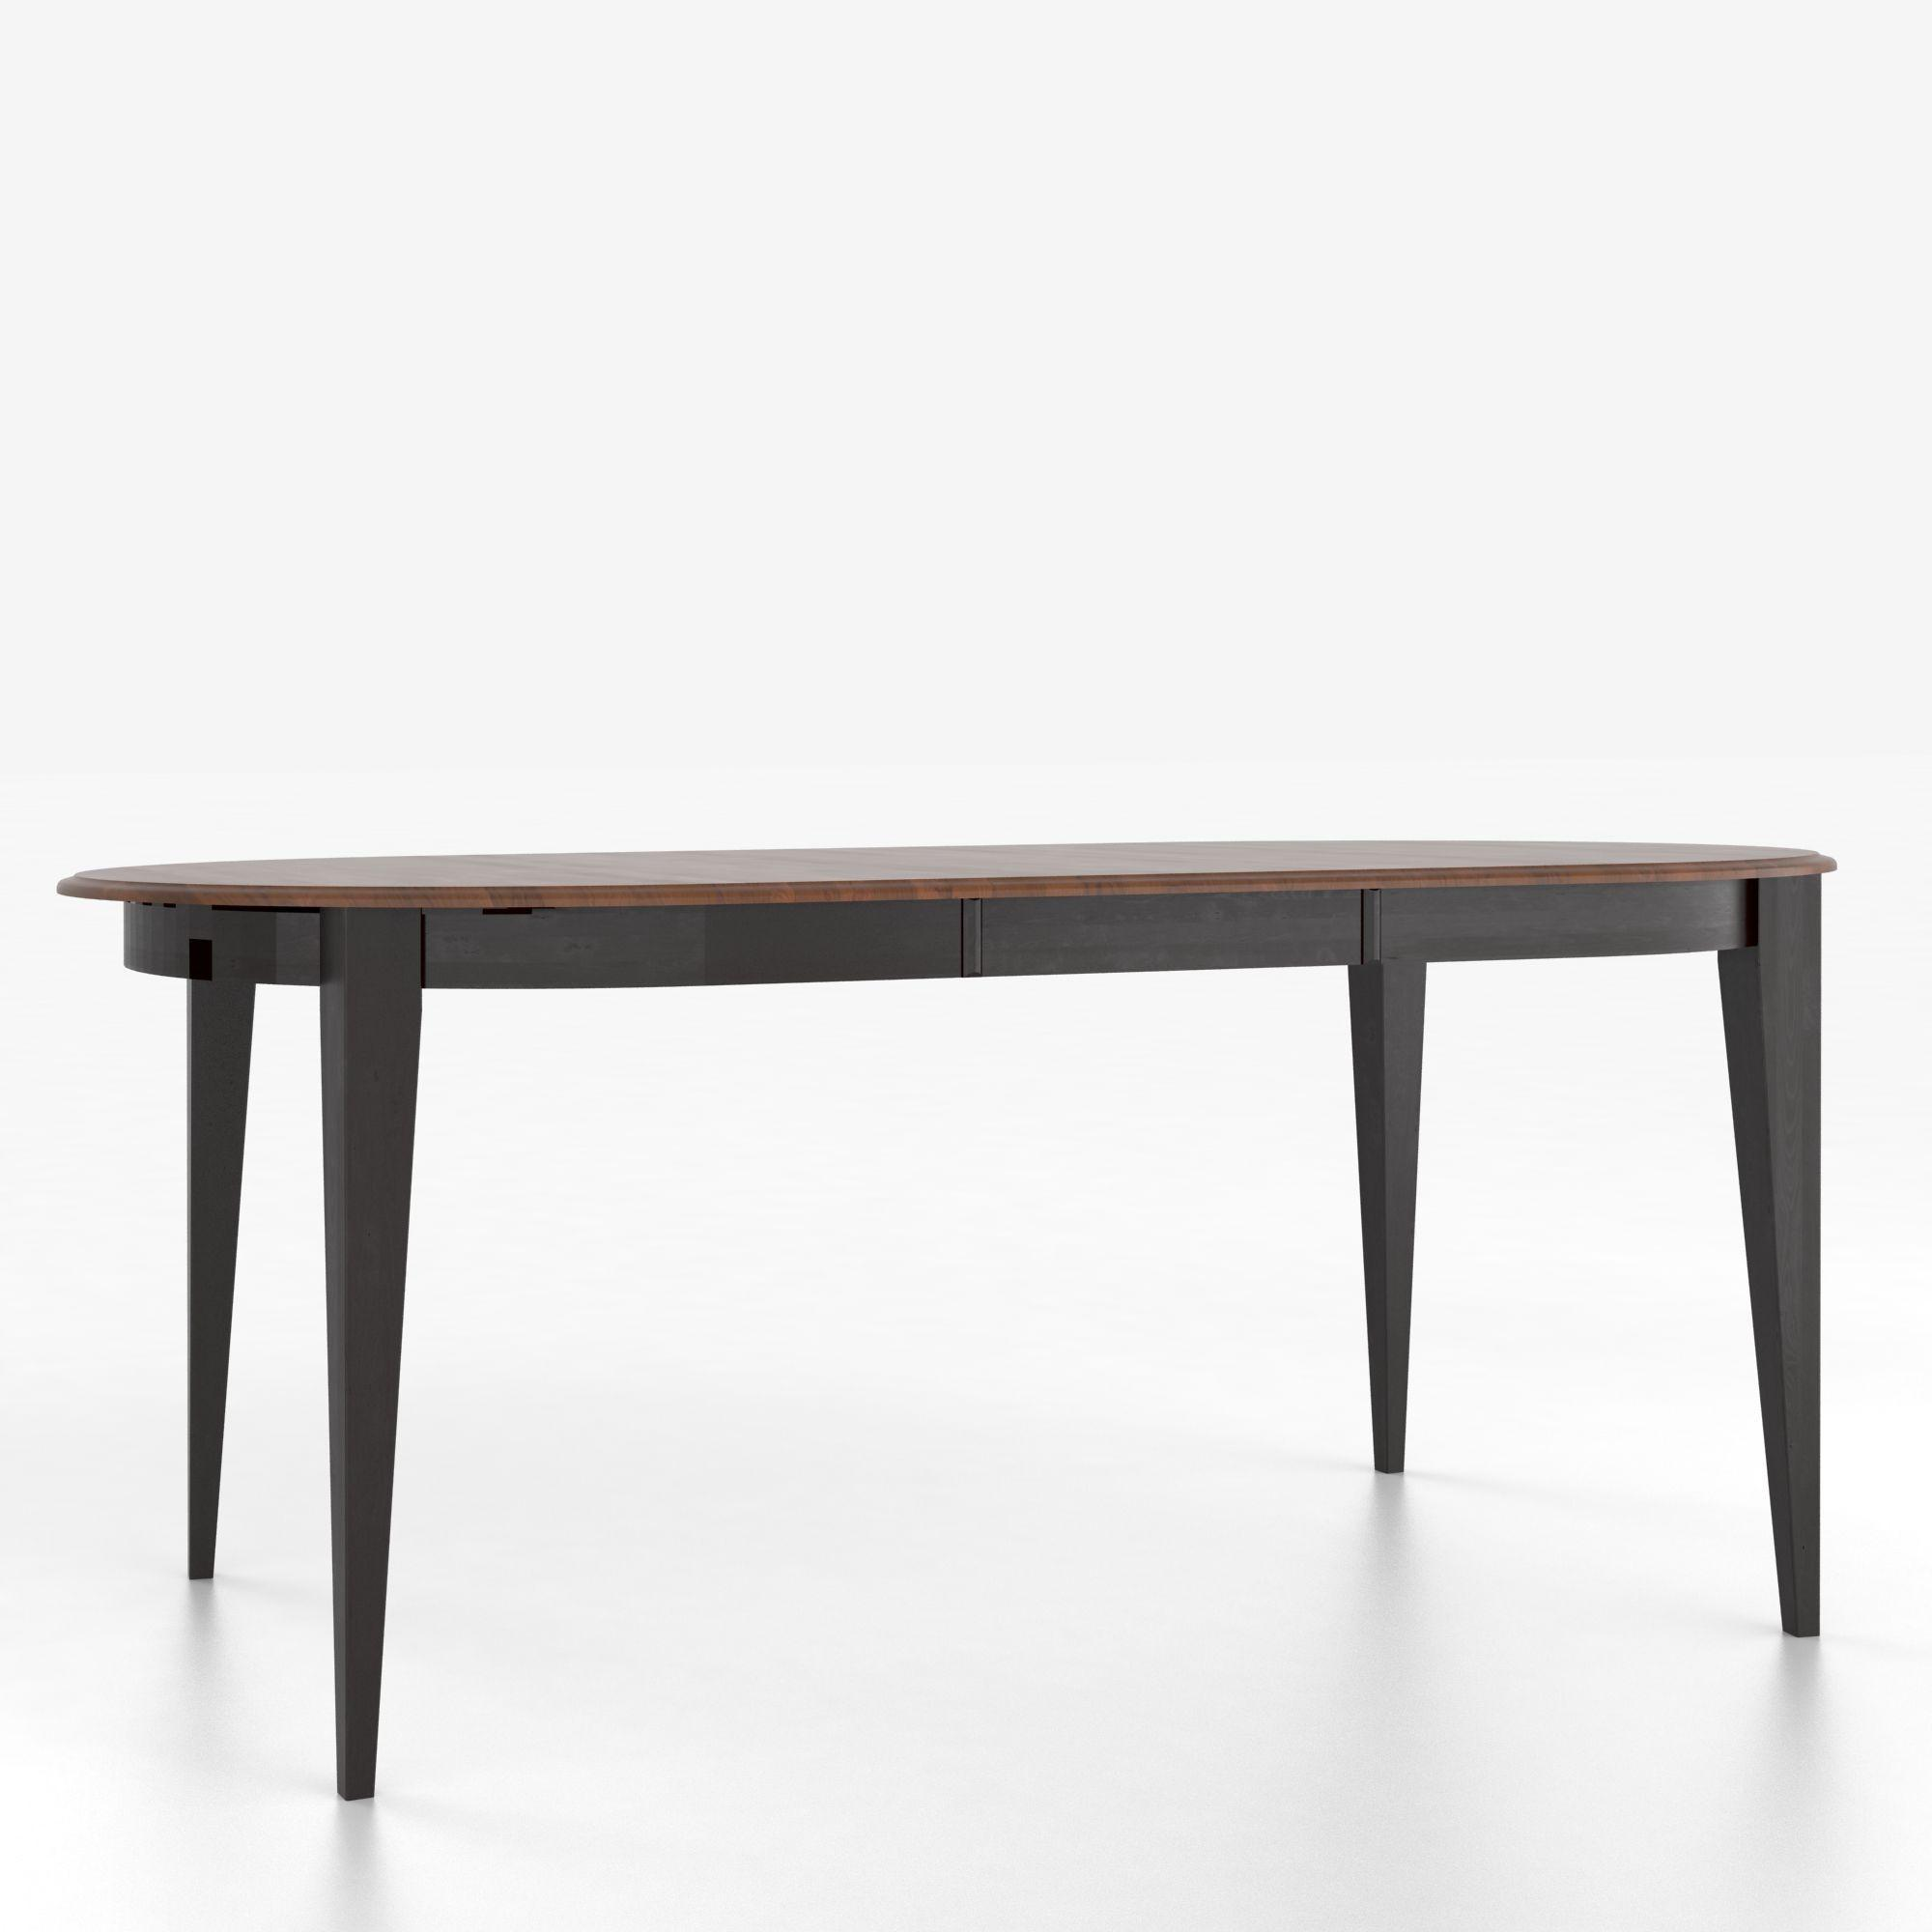 canadel custom dining tables customizable oval counter height table with legs dinette depot. Black Bedroom Furniture Sets. Home Design Ideas